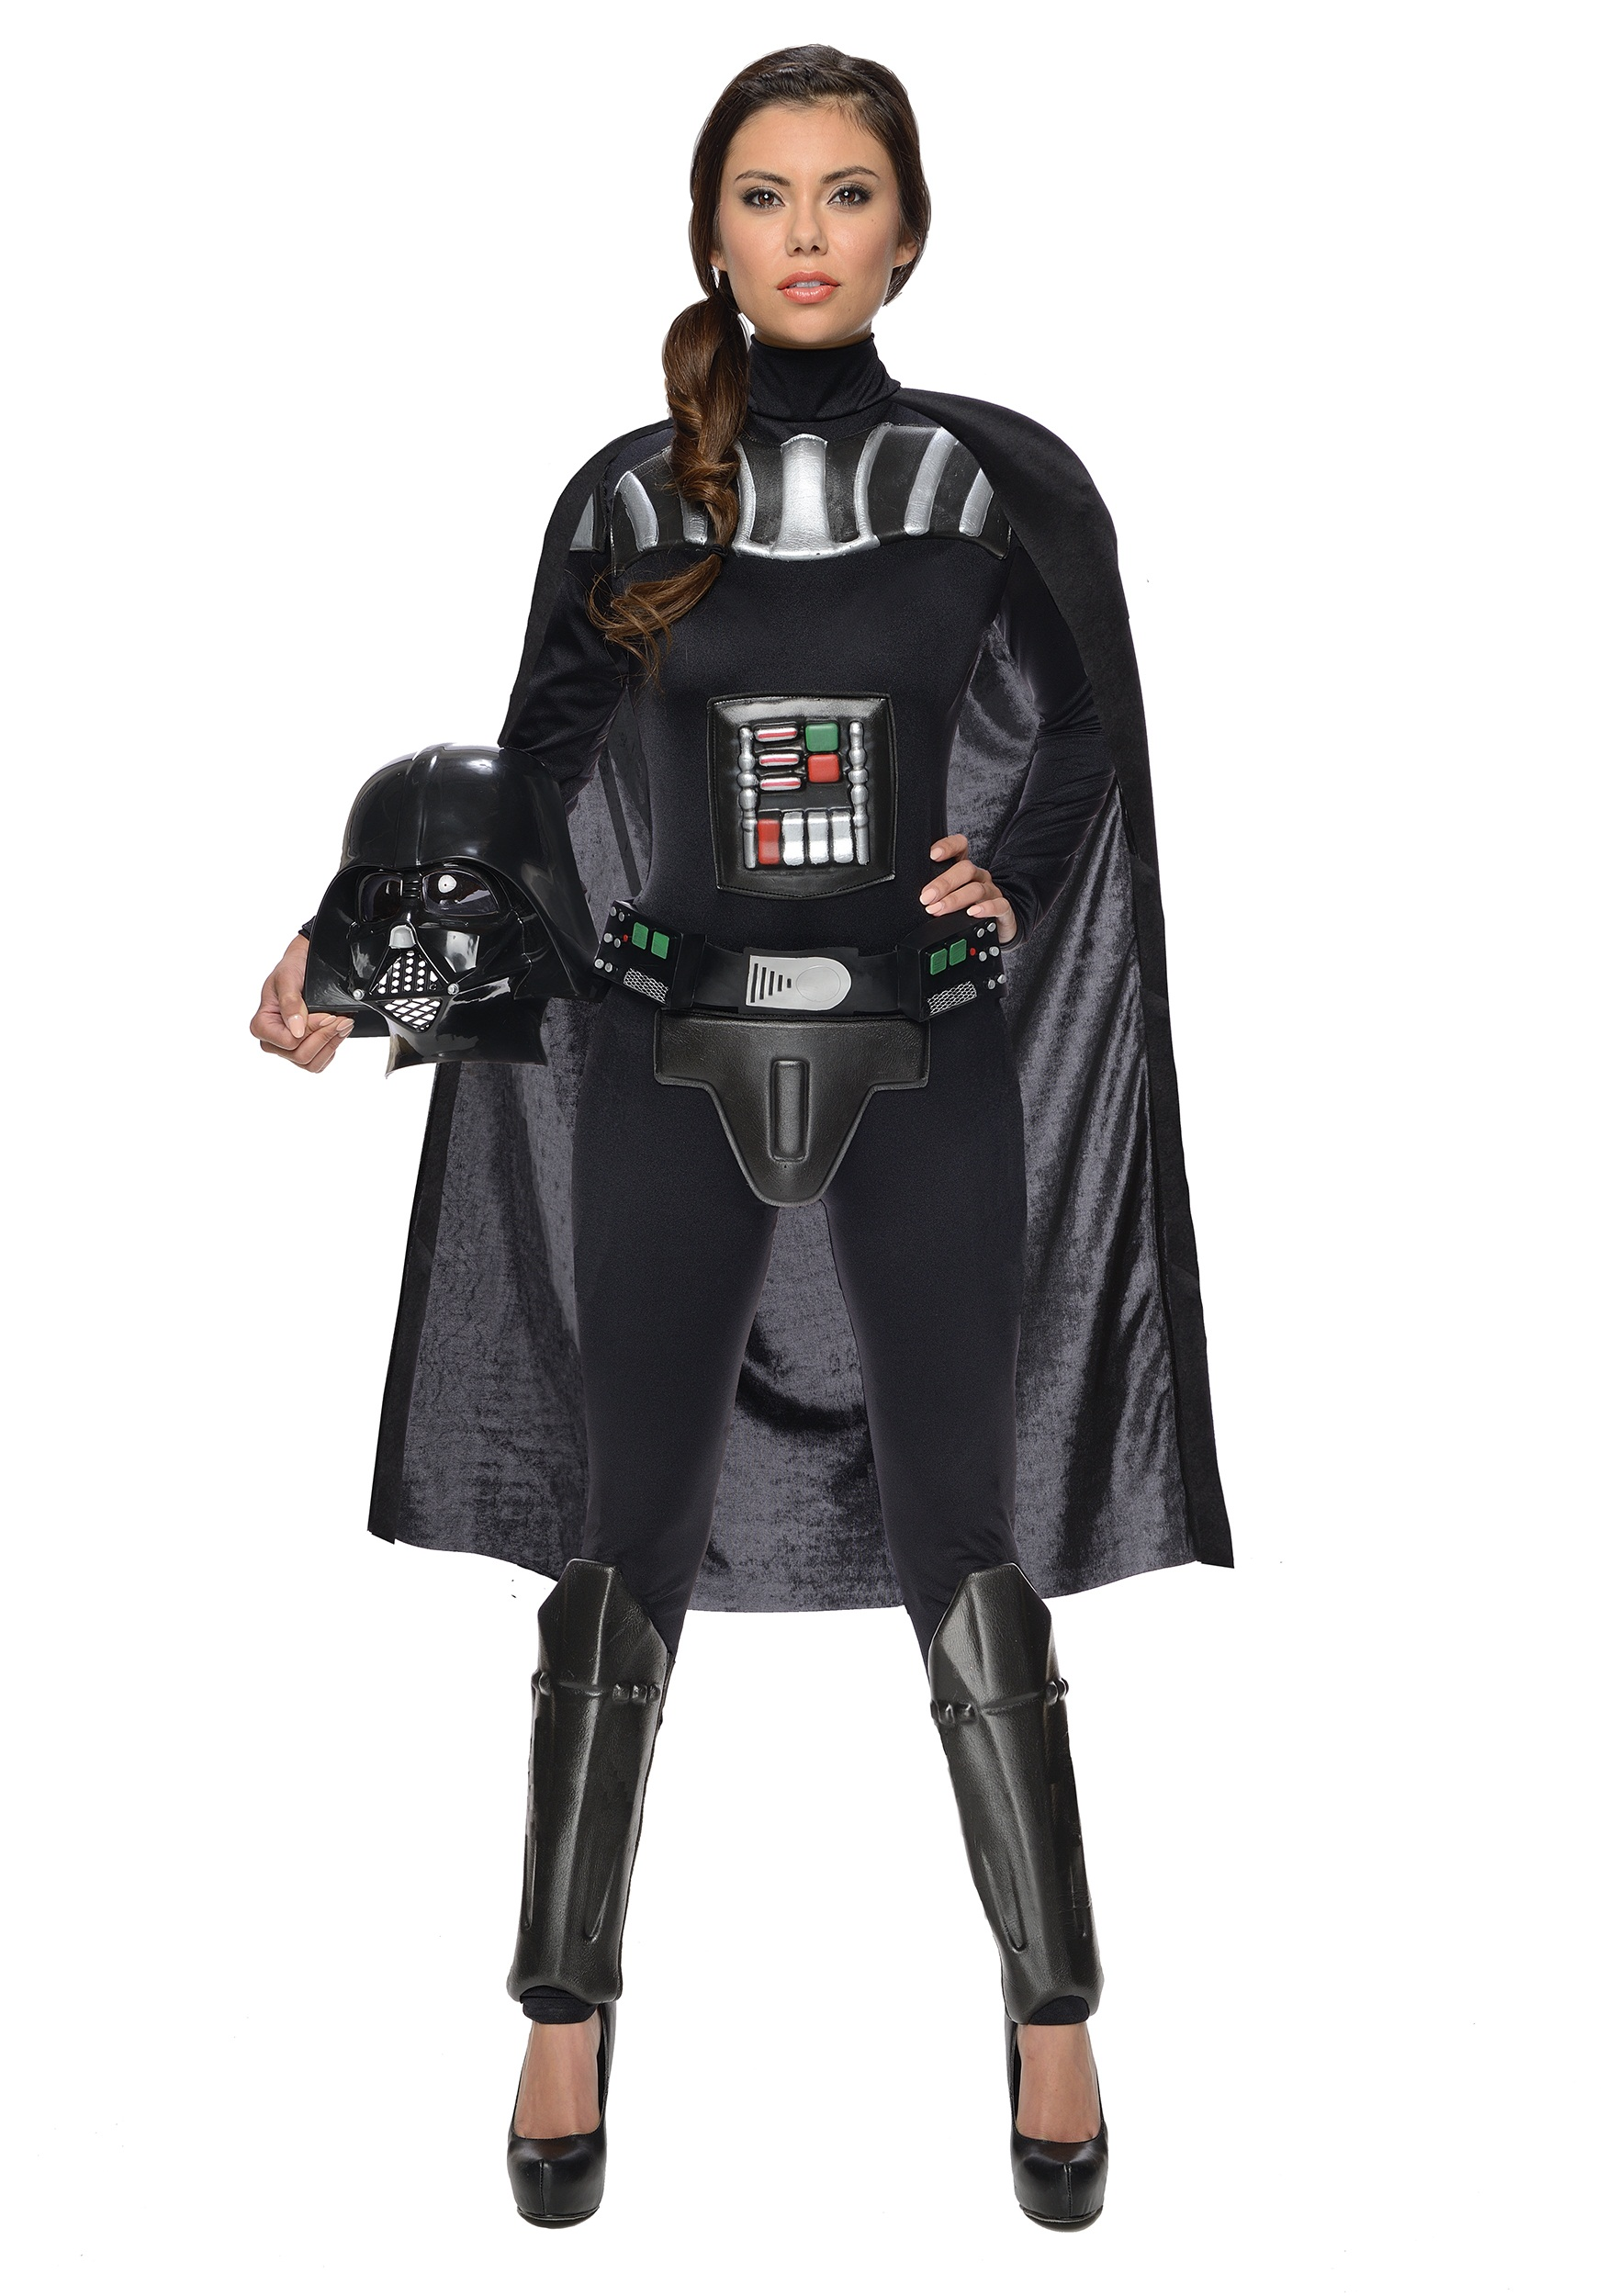 Adult starwars costumes smut young girl